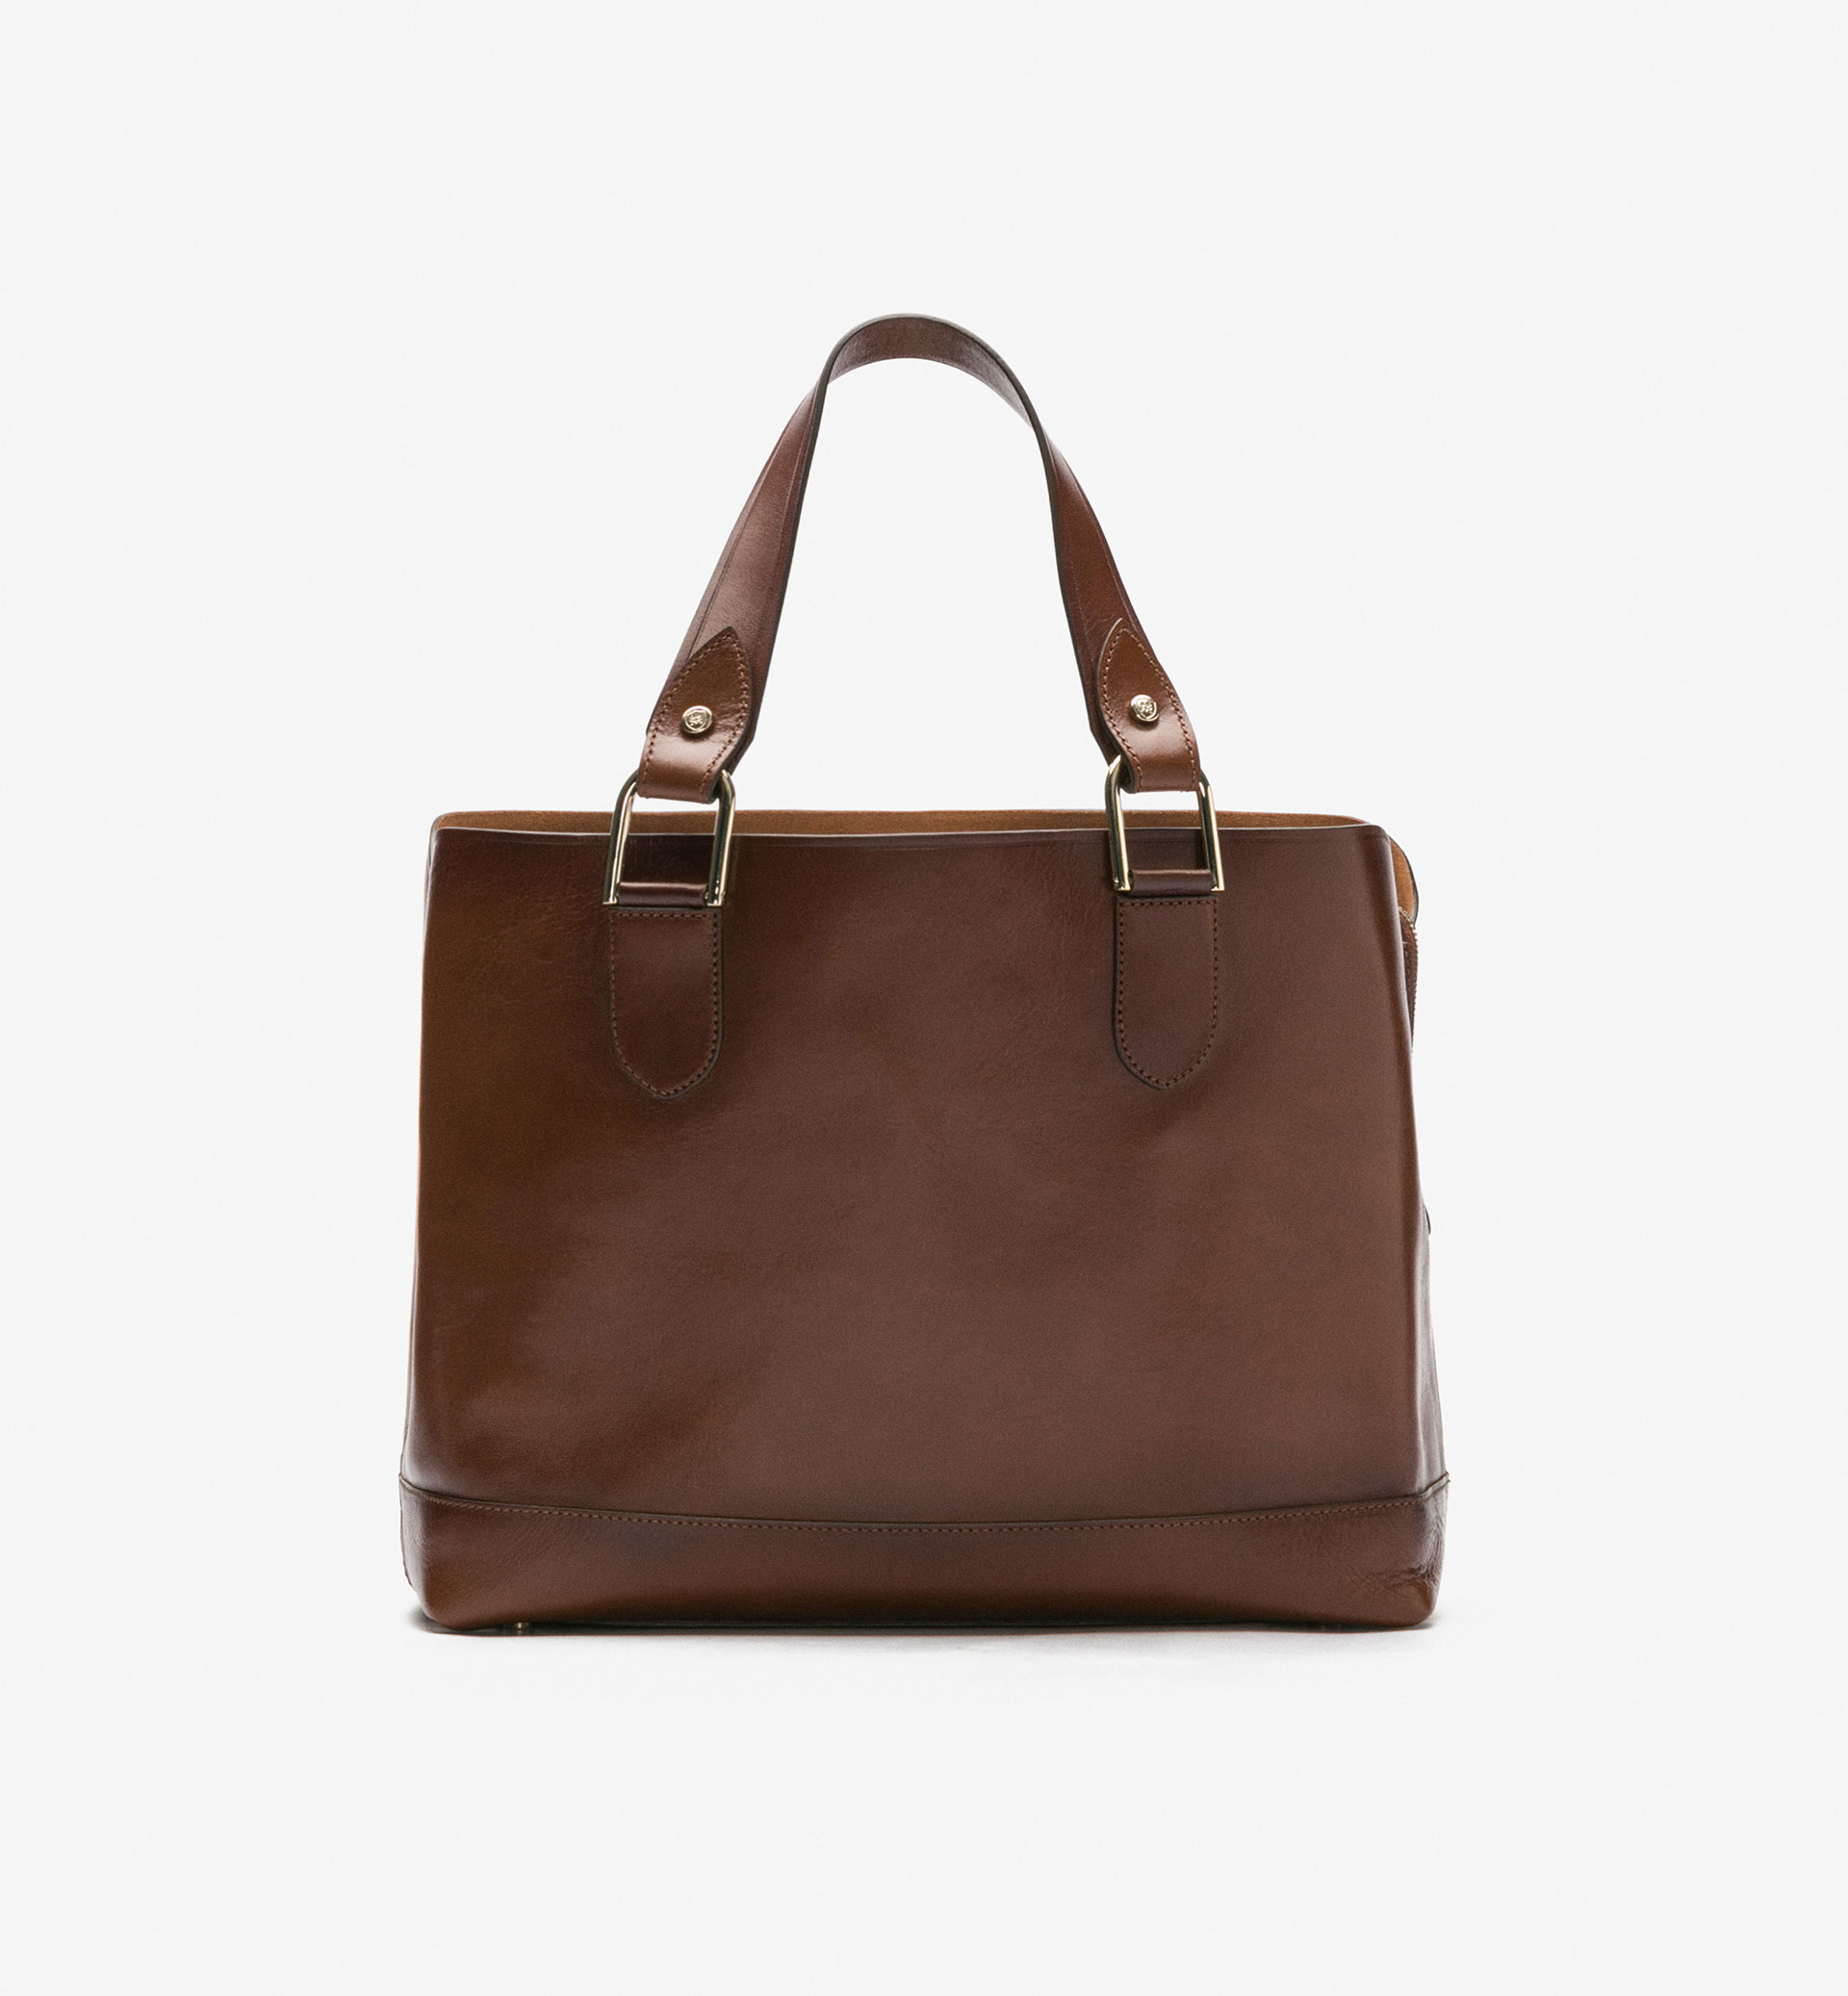 TOTE-STYLE BAG WITH DOUBLE COMPARTMENT